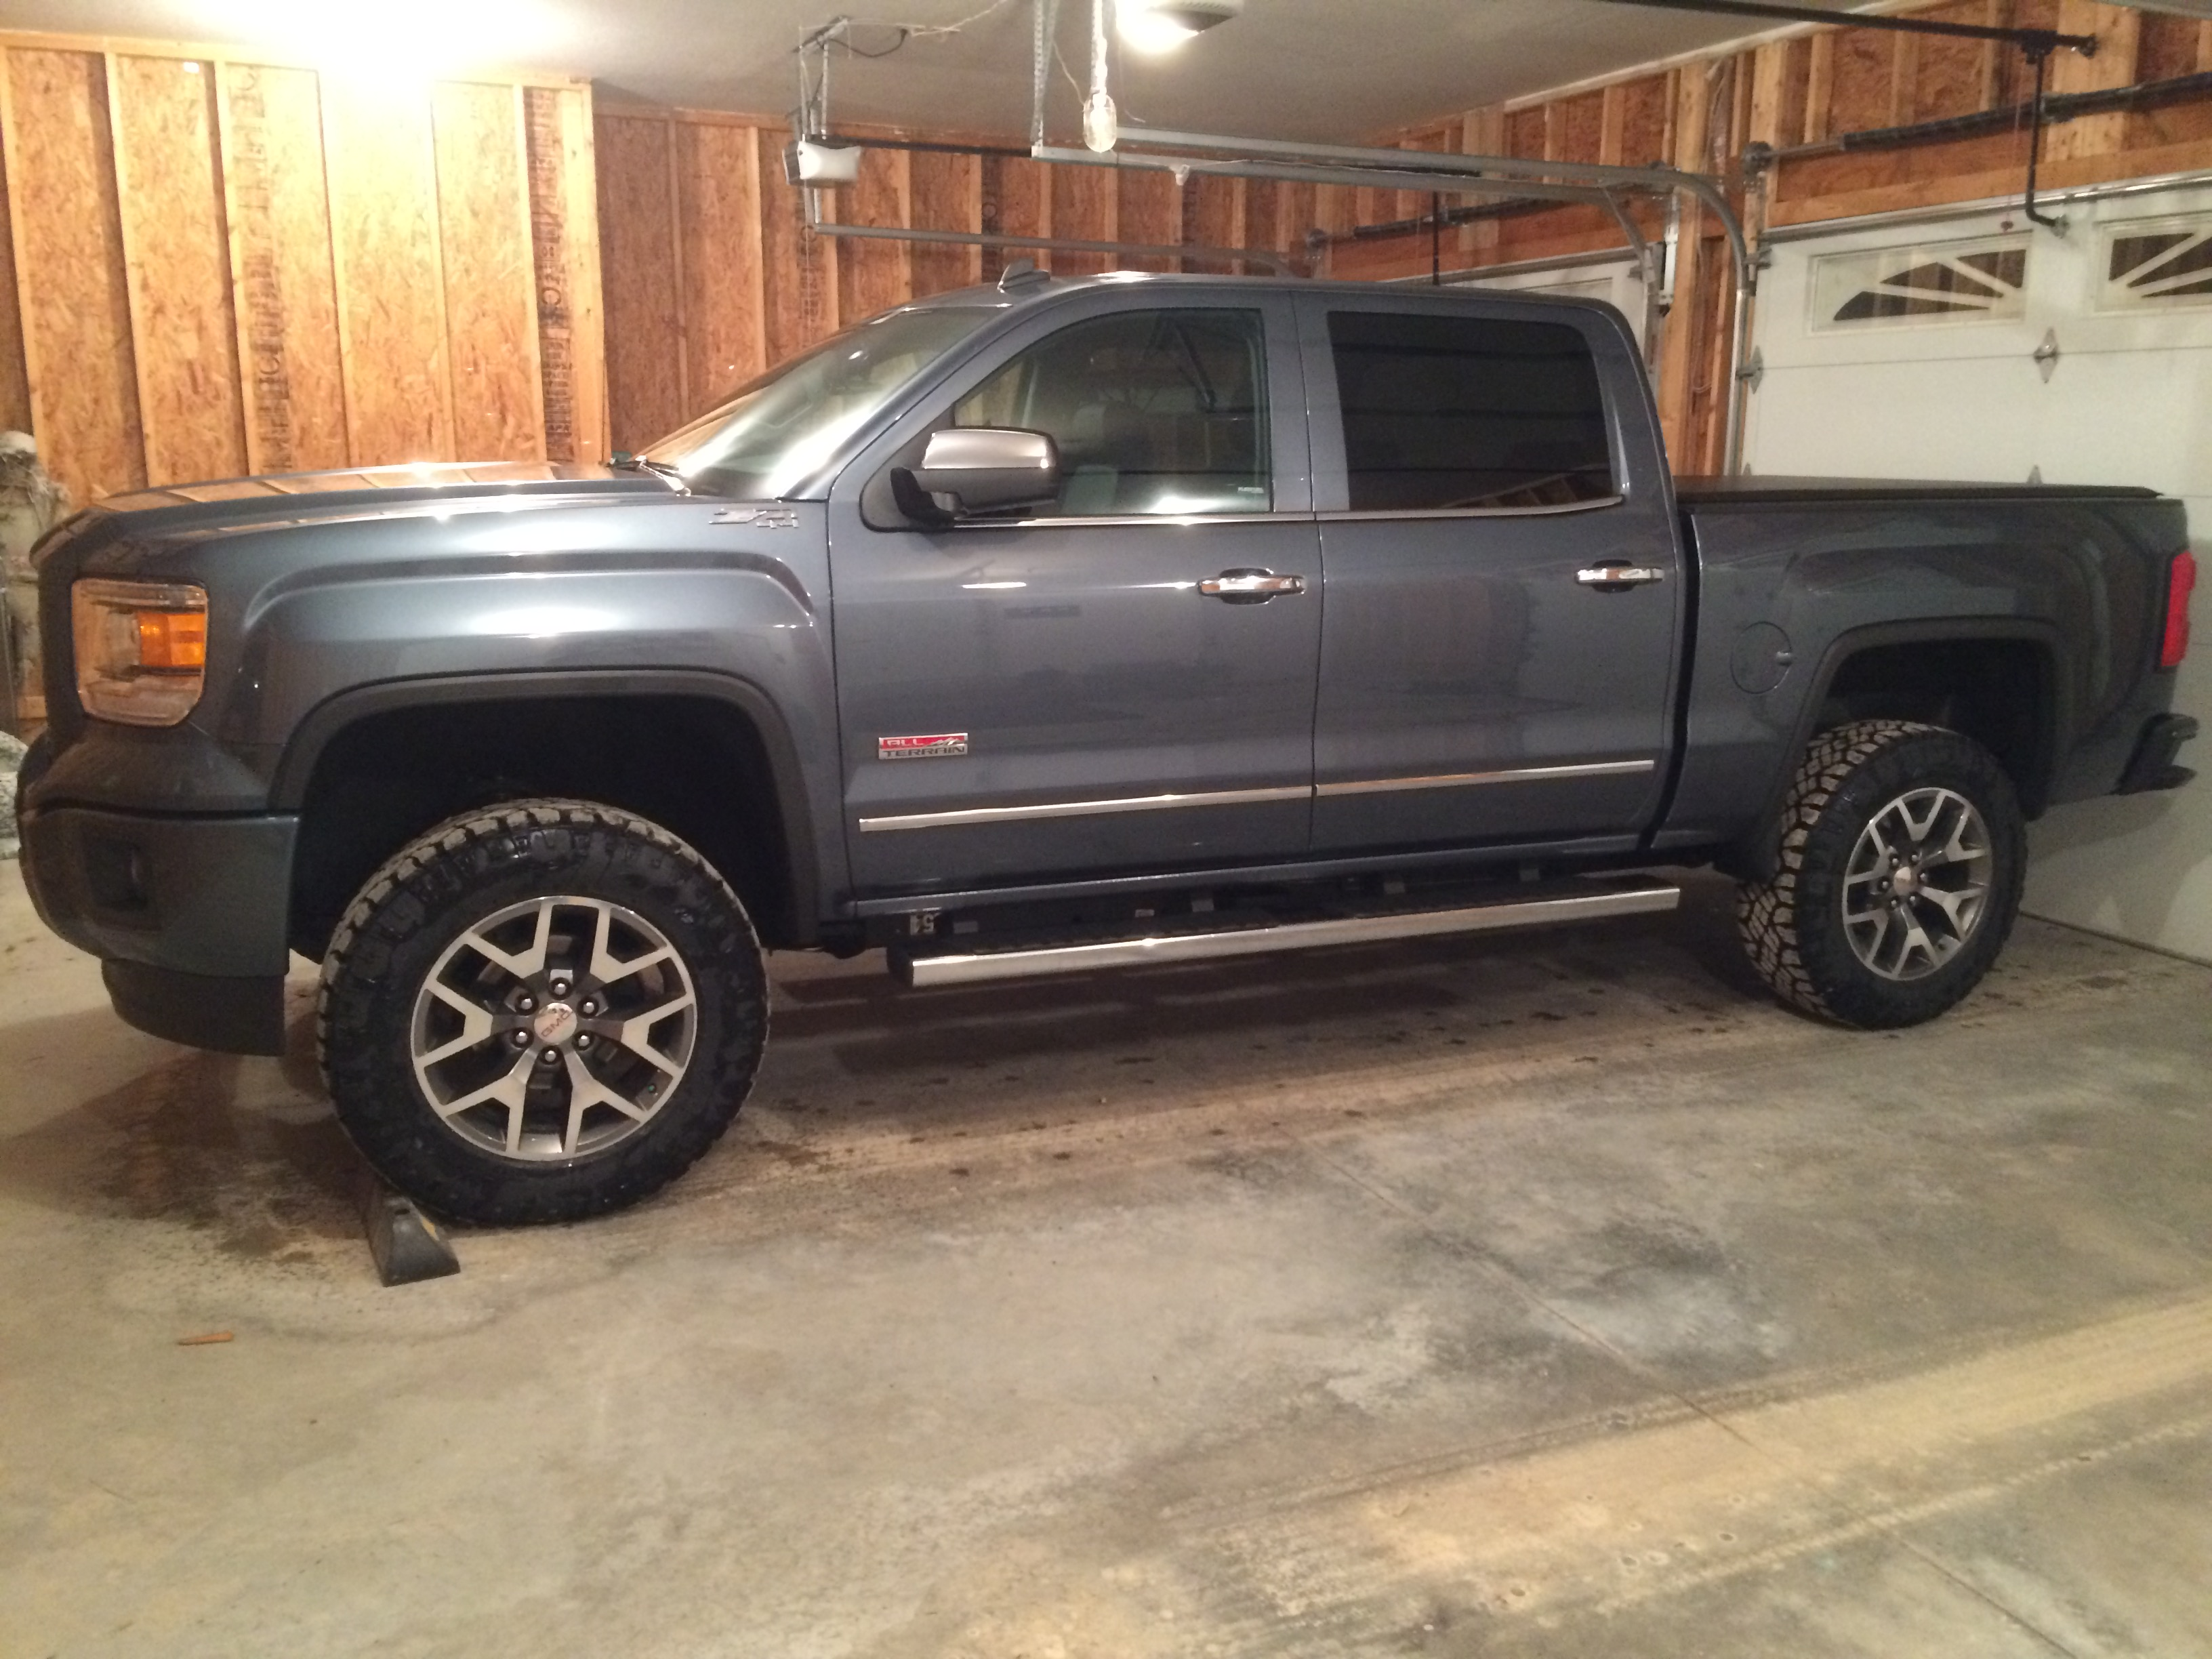 265458 2014 Chevy Silverado 1500 20 Fuel Wheels Vapor D569 Black 33x12 5x20 Rbp Mt Tires Rough Country Leveling Kit as well 177 Hk moreover 184588 25 Front And 2 Rear Level Kit as well Wheel Offset 2015 Gmc Sierra 1500 Slightly Aggressive Leveling Kit moreover Watch. on 2014 gmc sierra leveling kit